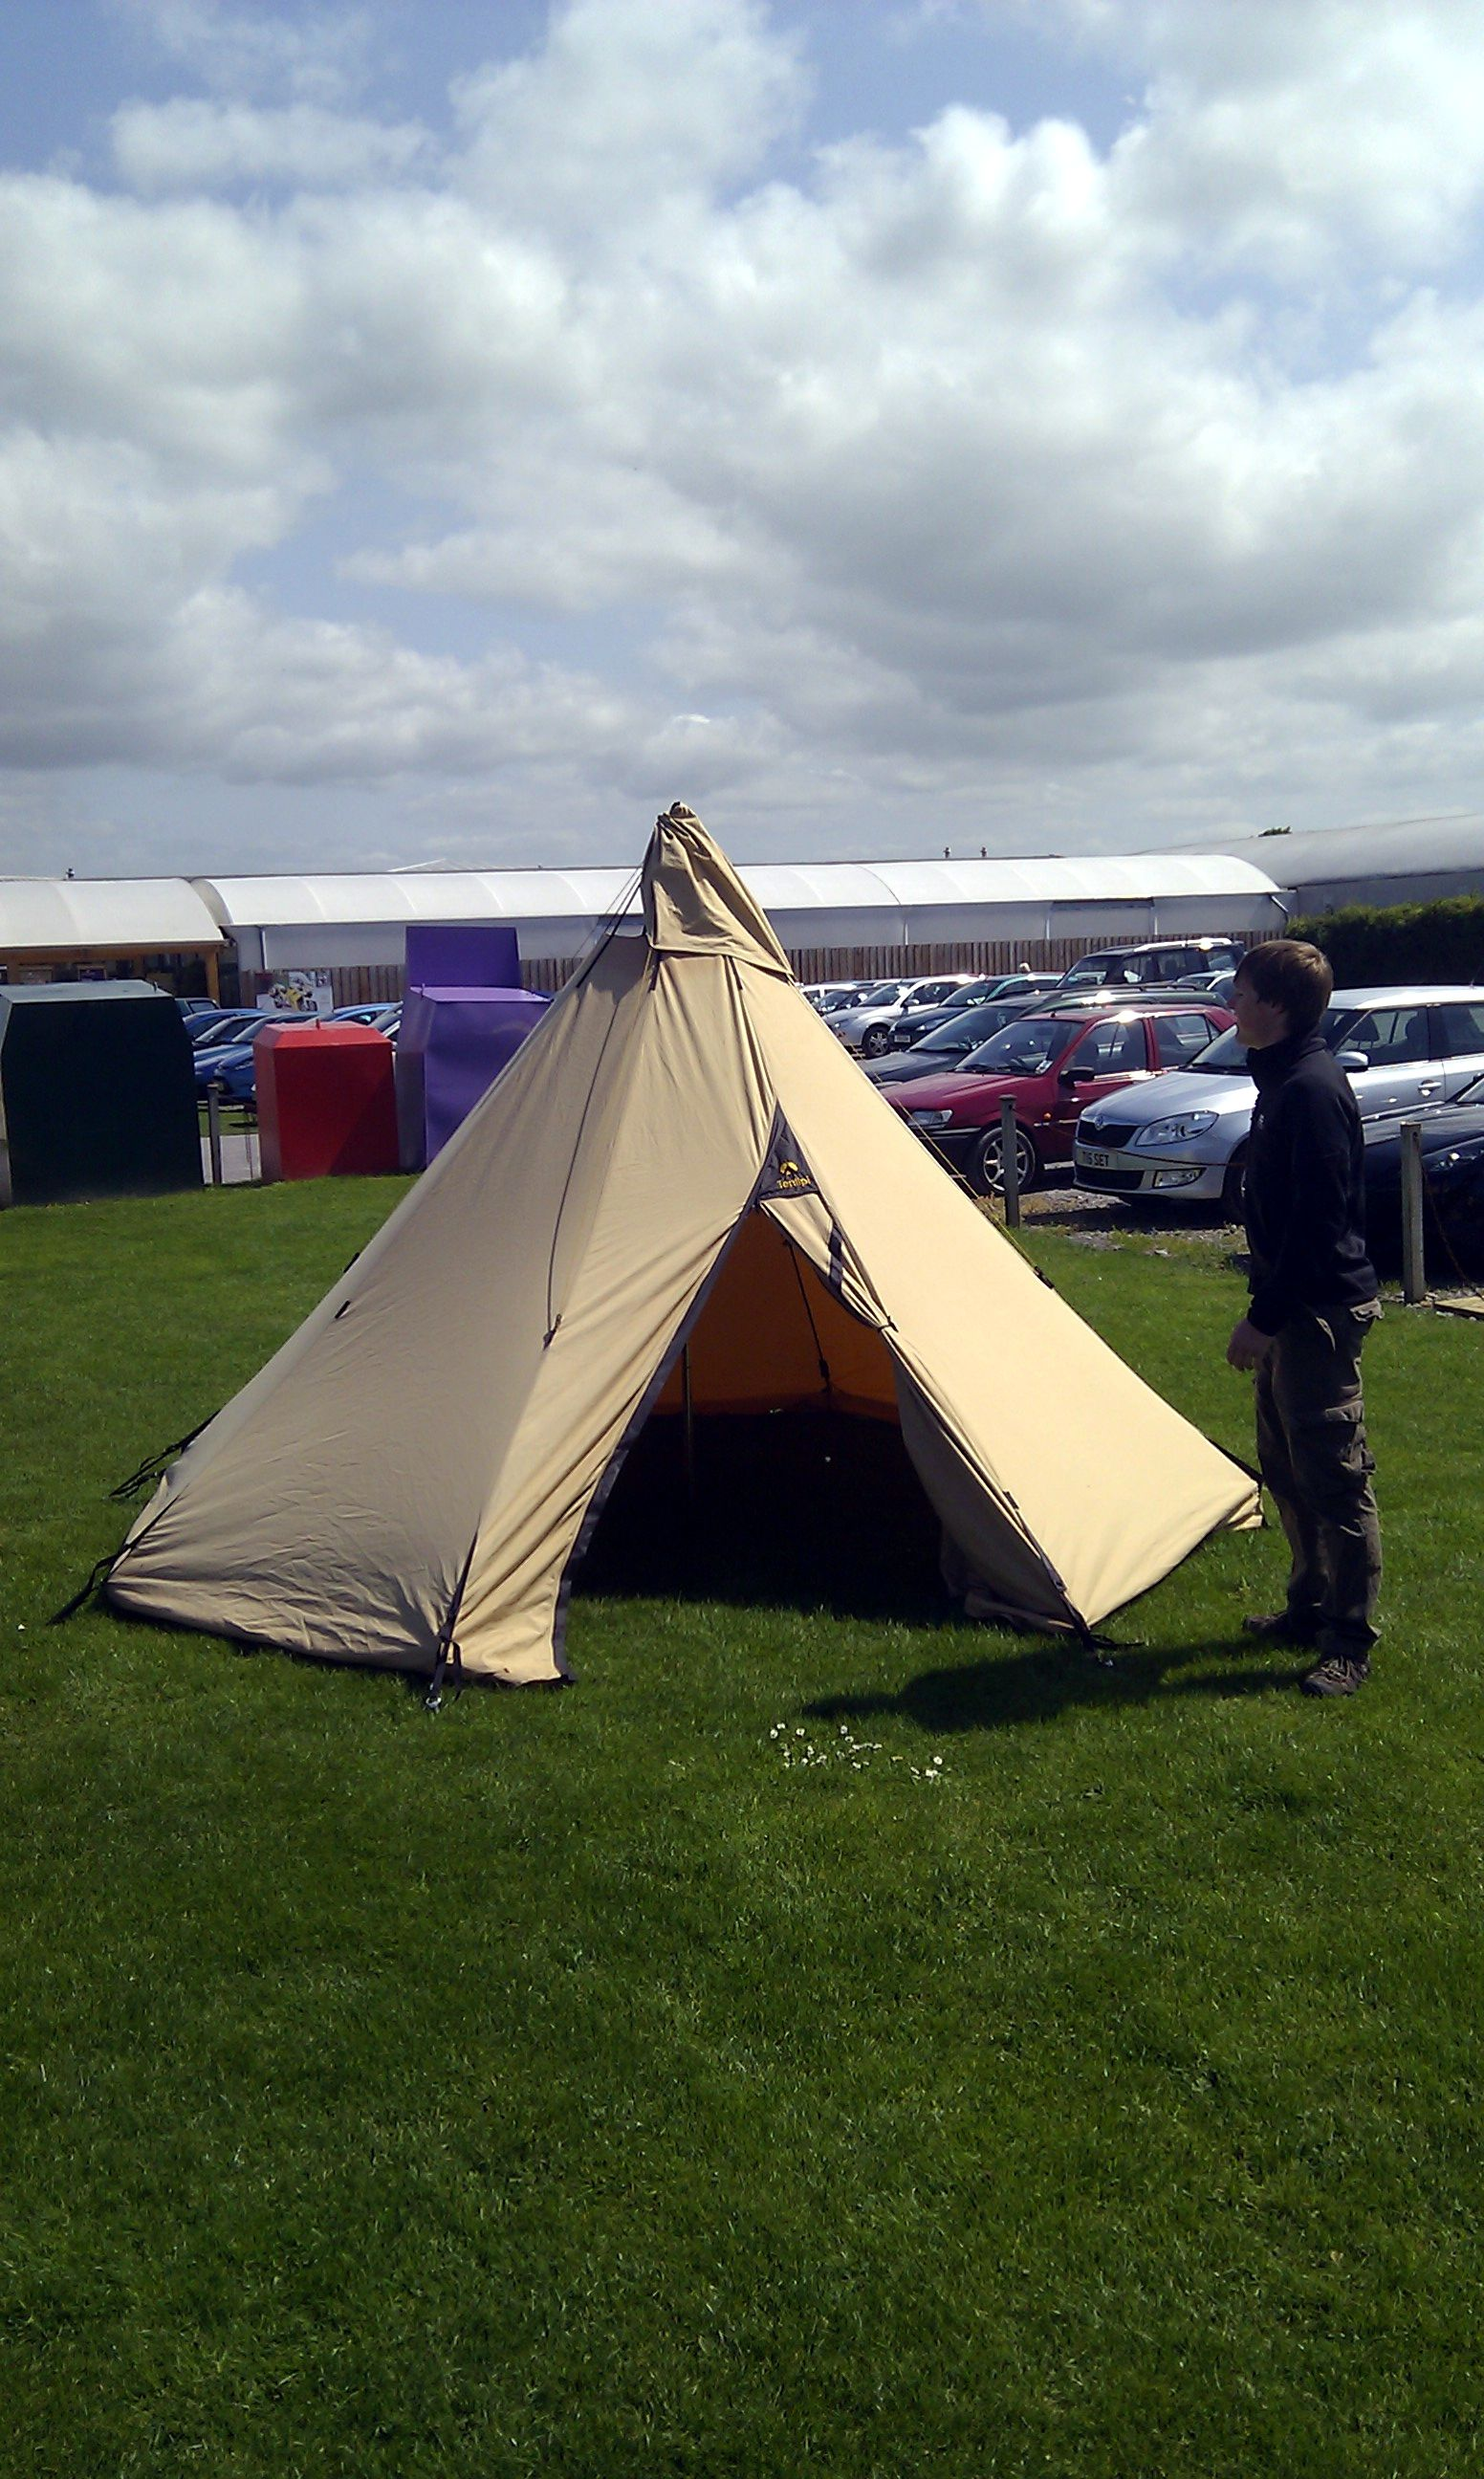 #Tentipi Onyx 5 with Matt of the Taunton Leisure team stood next to it & Tentipi Onyx 5 with Matt of the Taunton Leisure team stood next to ...